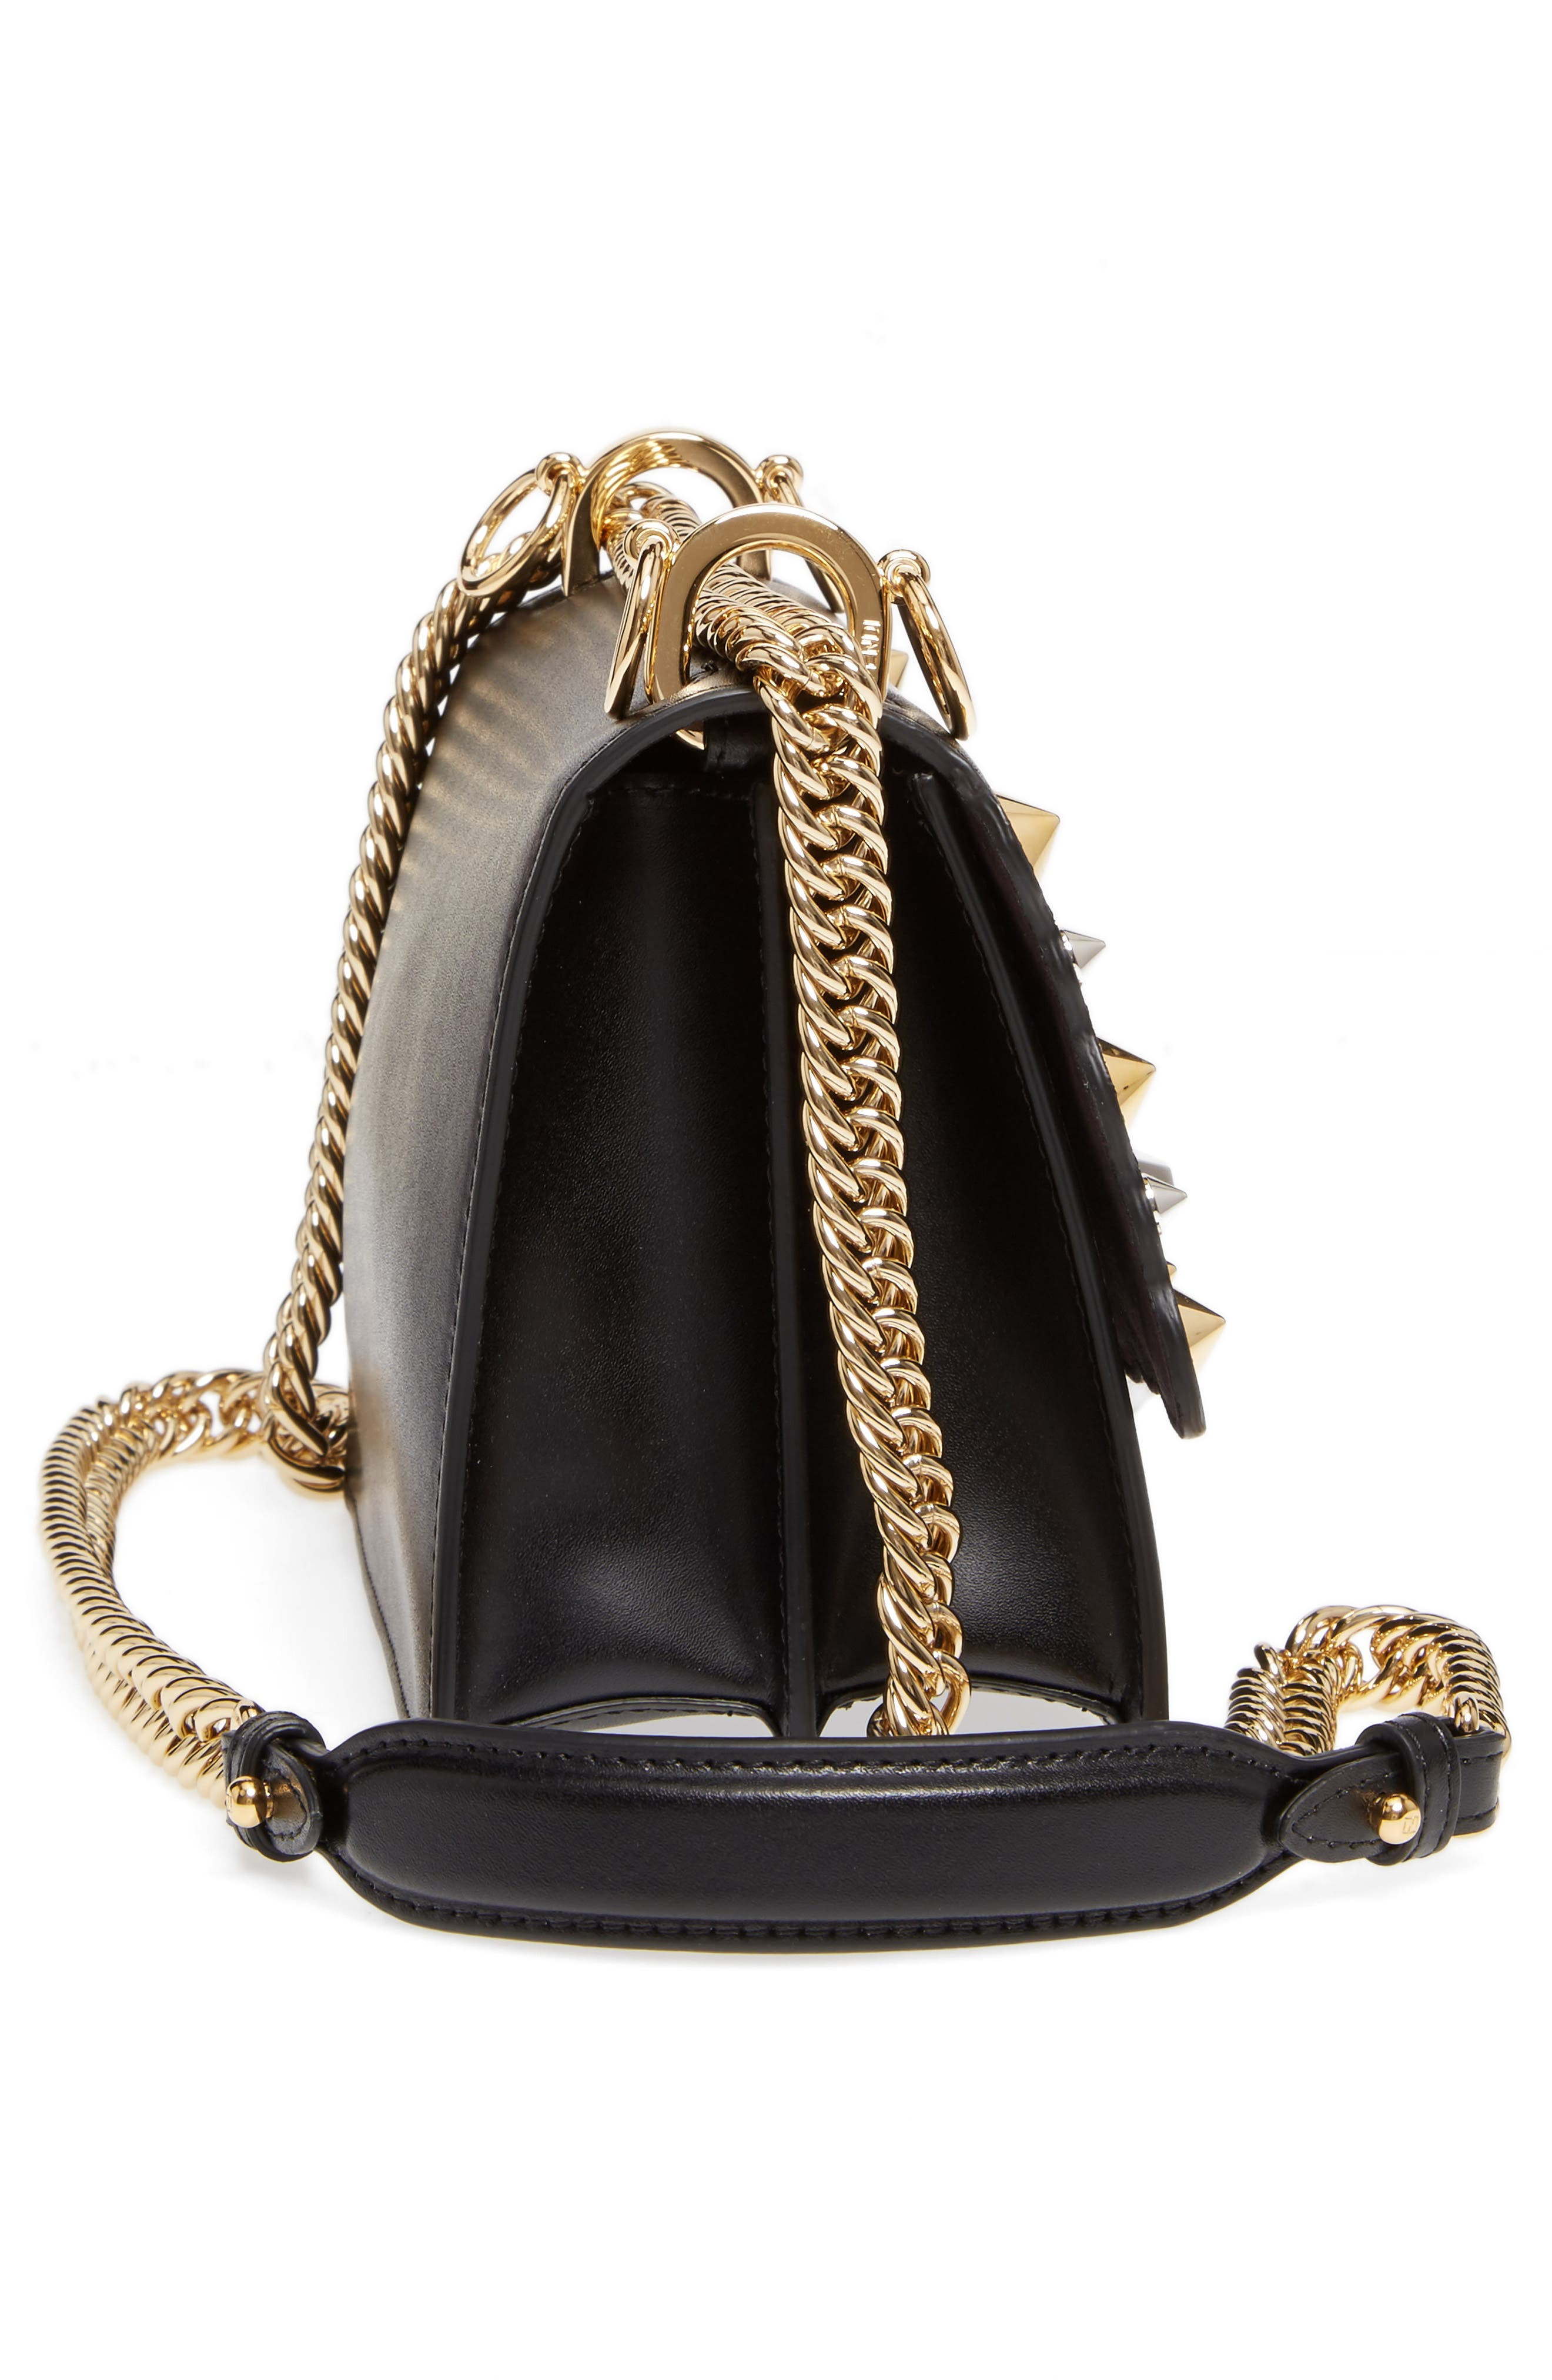 Small Kan I Scallop Leather Shoulder Bag,                             Alternate thumbnail 5, color,                             NERO/ ORO SOFT